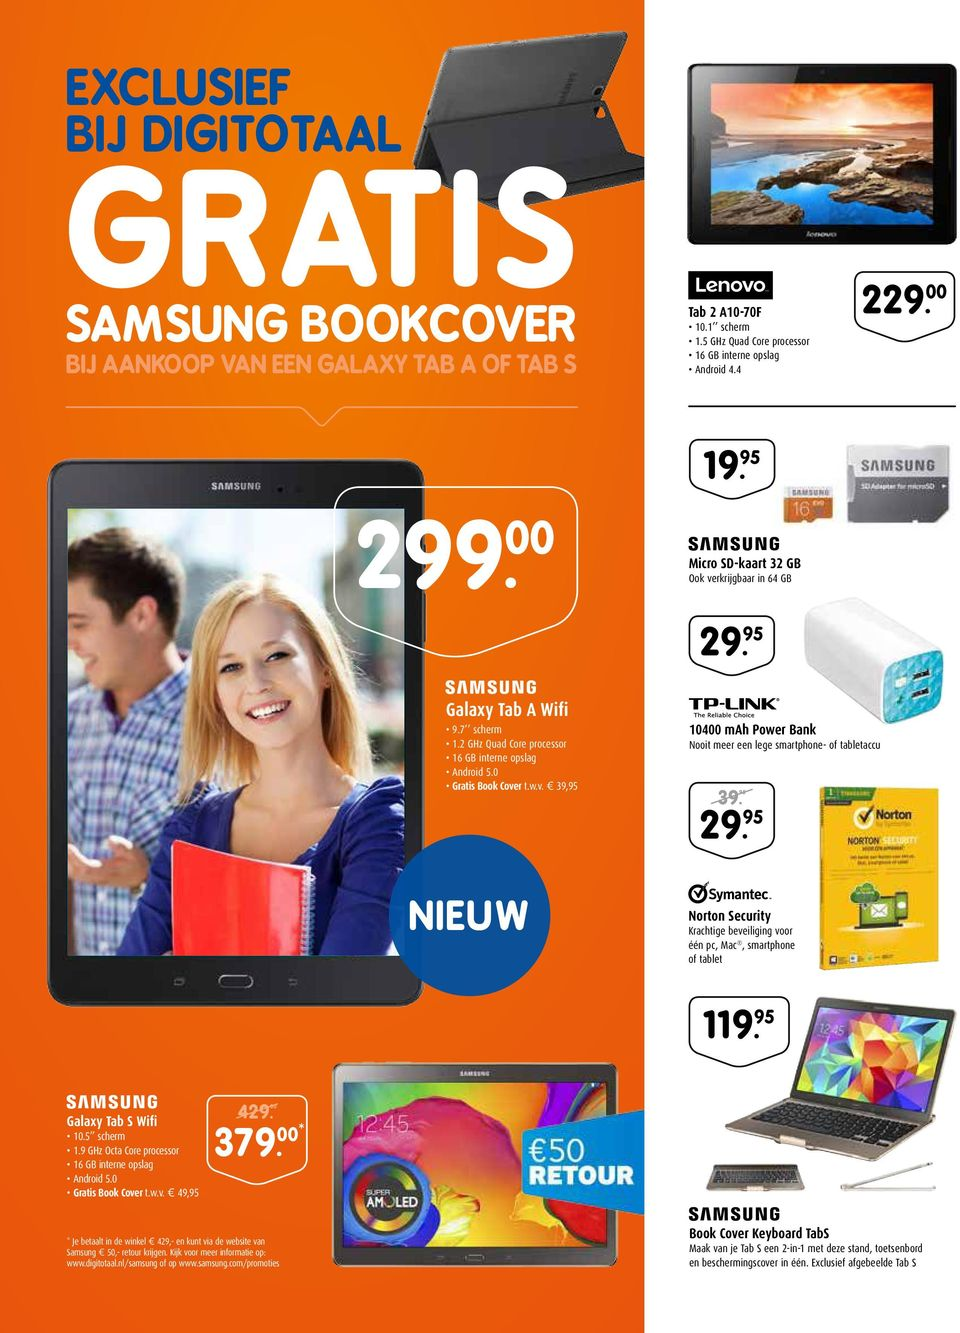 95 29. 95 NIEUW Norton Security Krachtige beveiliging voor één pc, Mac, smartphone of tablet 119. 95 Galaxy Tab S Wifi 10.5 scherm 1.9 GHz Octa Core processor 16 GB interne opslag Android 5.